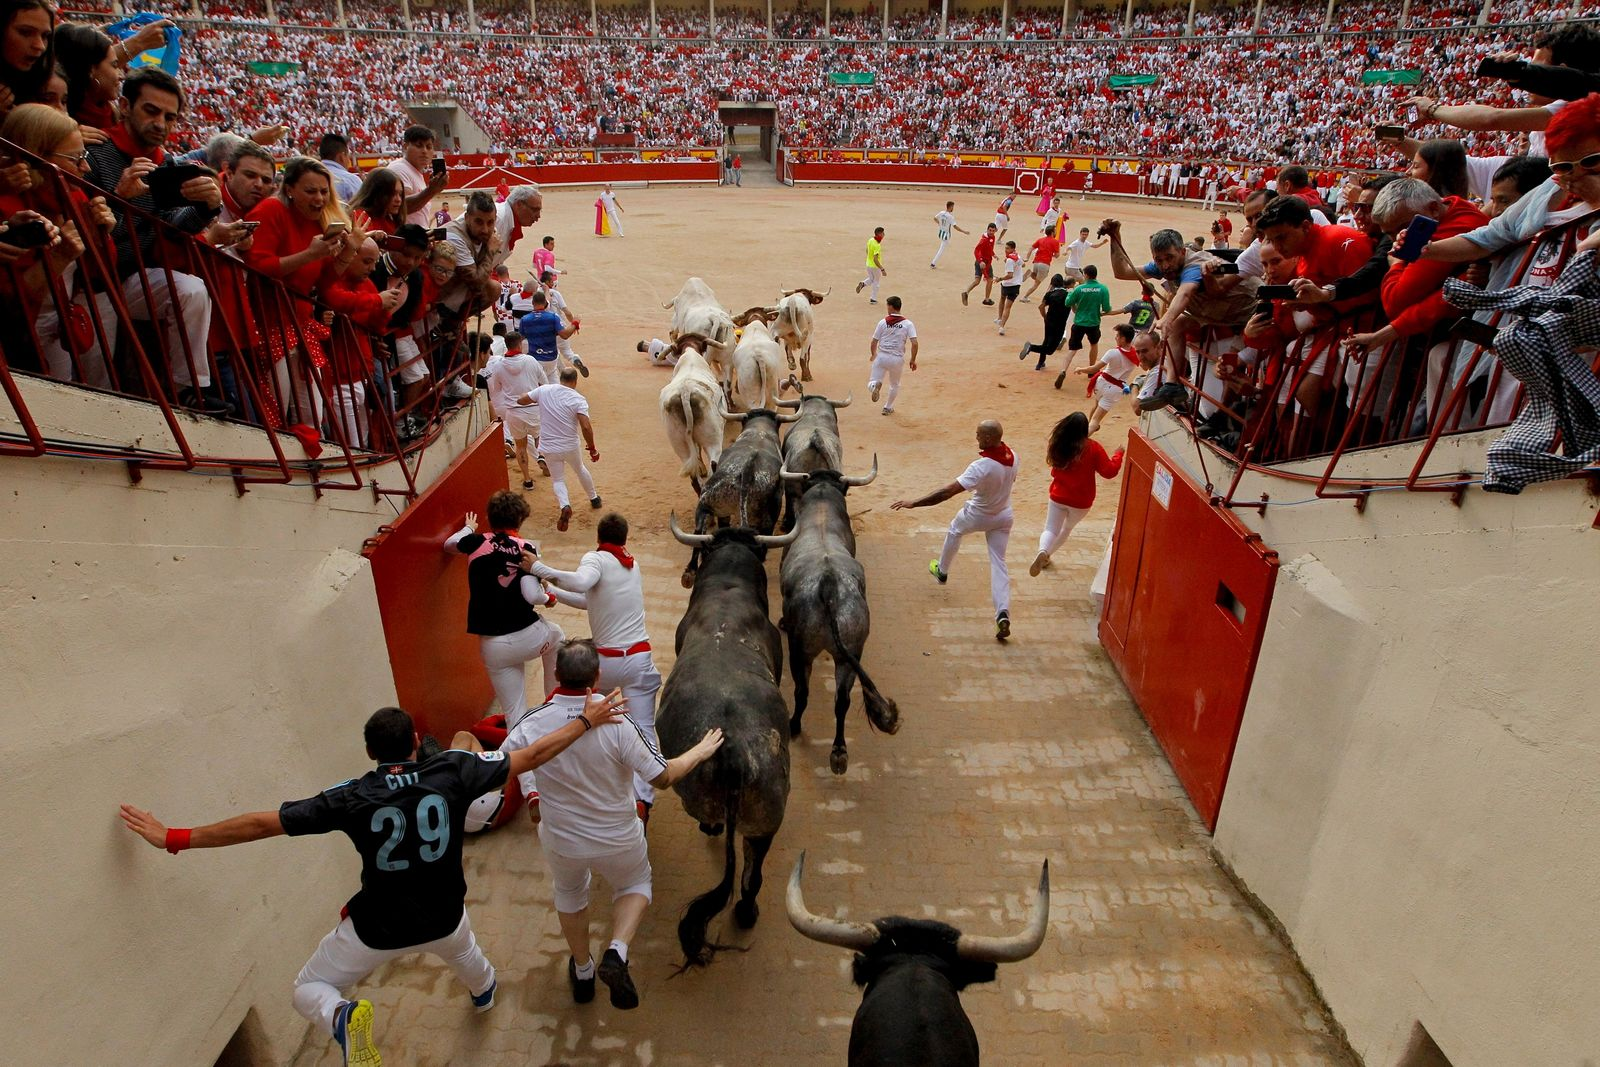 "Revellers and fighting bulls arrive at the bullring during the running of the bulls at the San Fermin Festival, in Pamplona, northern Spain, Sunday, July 14, 2019. The San Fermin fiesta made internationally famous by Ernest Hemingway in his novel ""The Sun Also Rises"" draws around 1 million partygoers each year.(AP Photo/Alvaro Barrientos)"